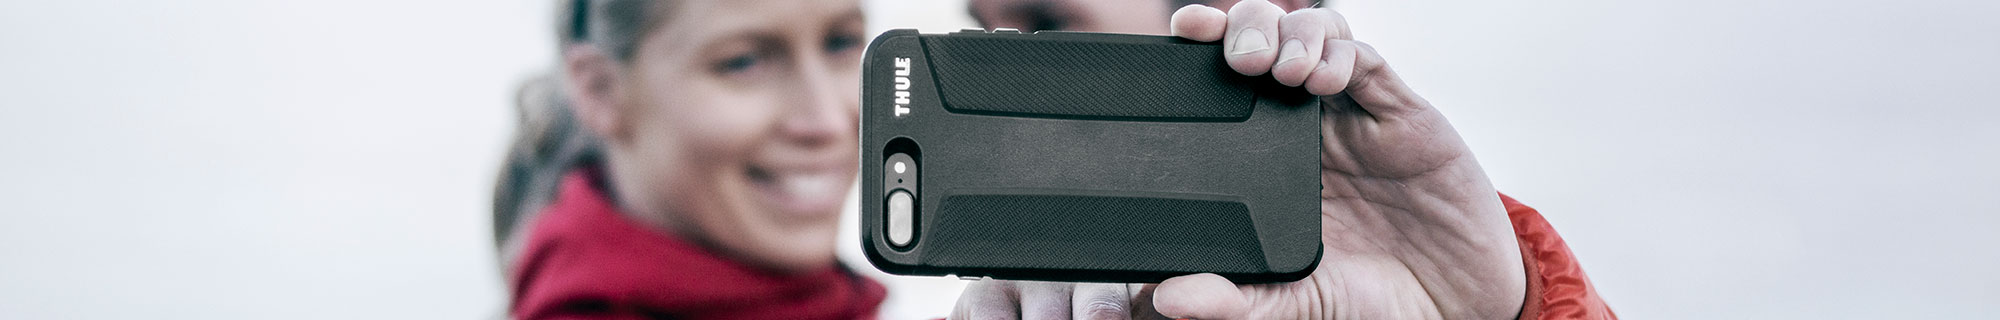 Thule iphone cases